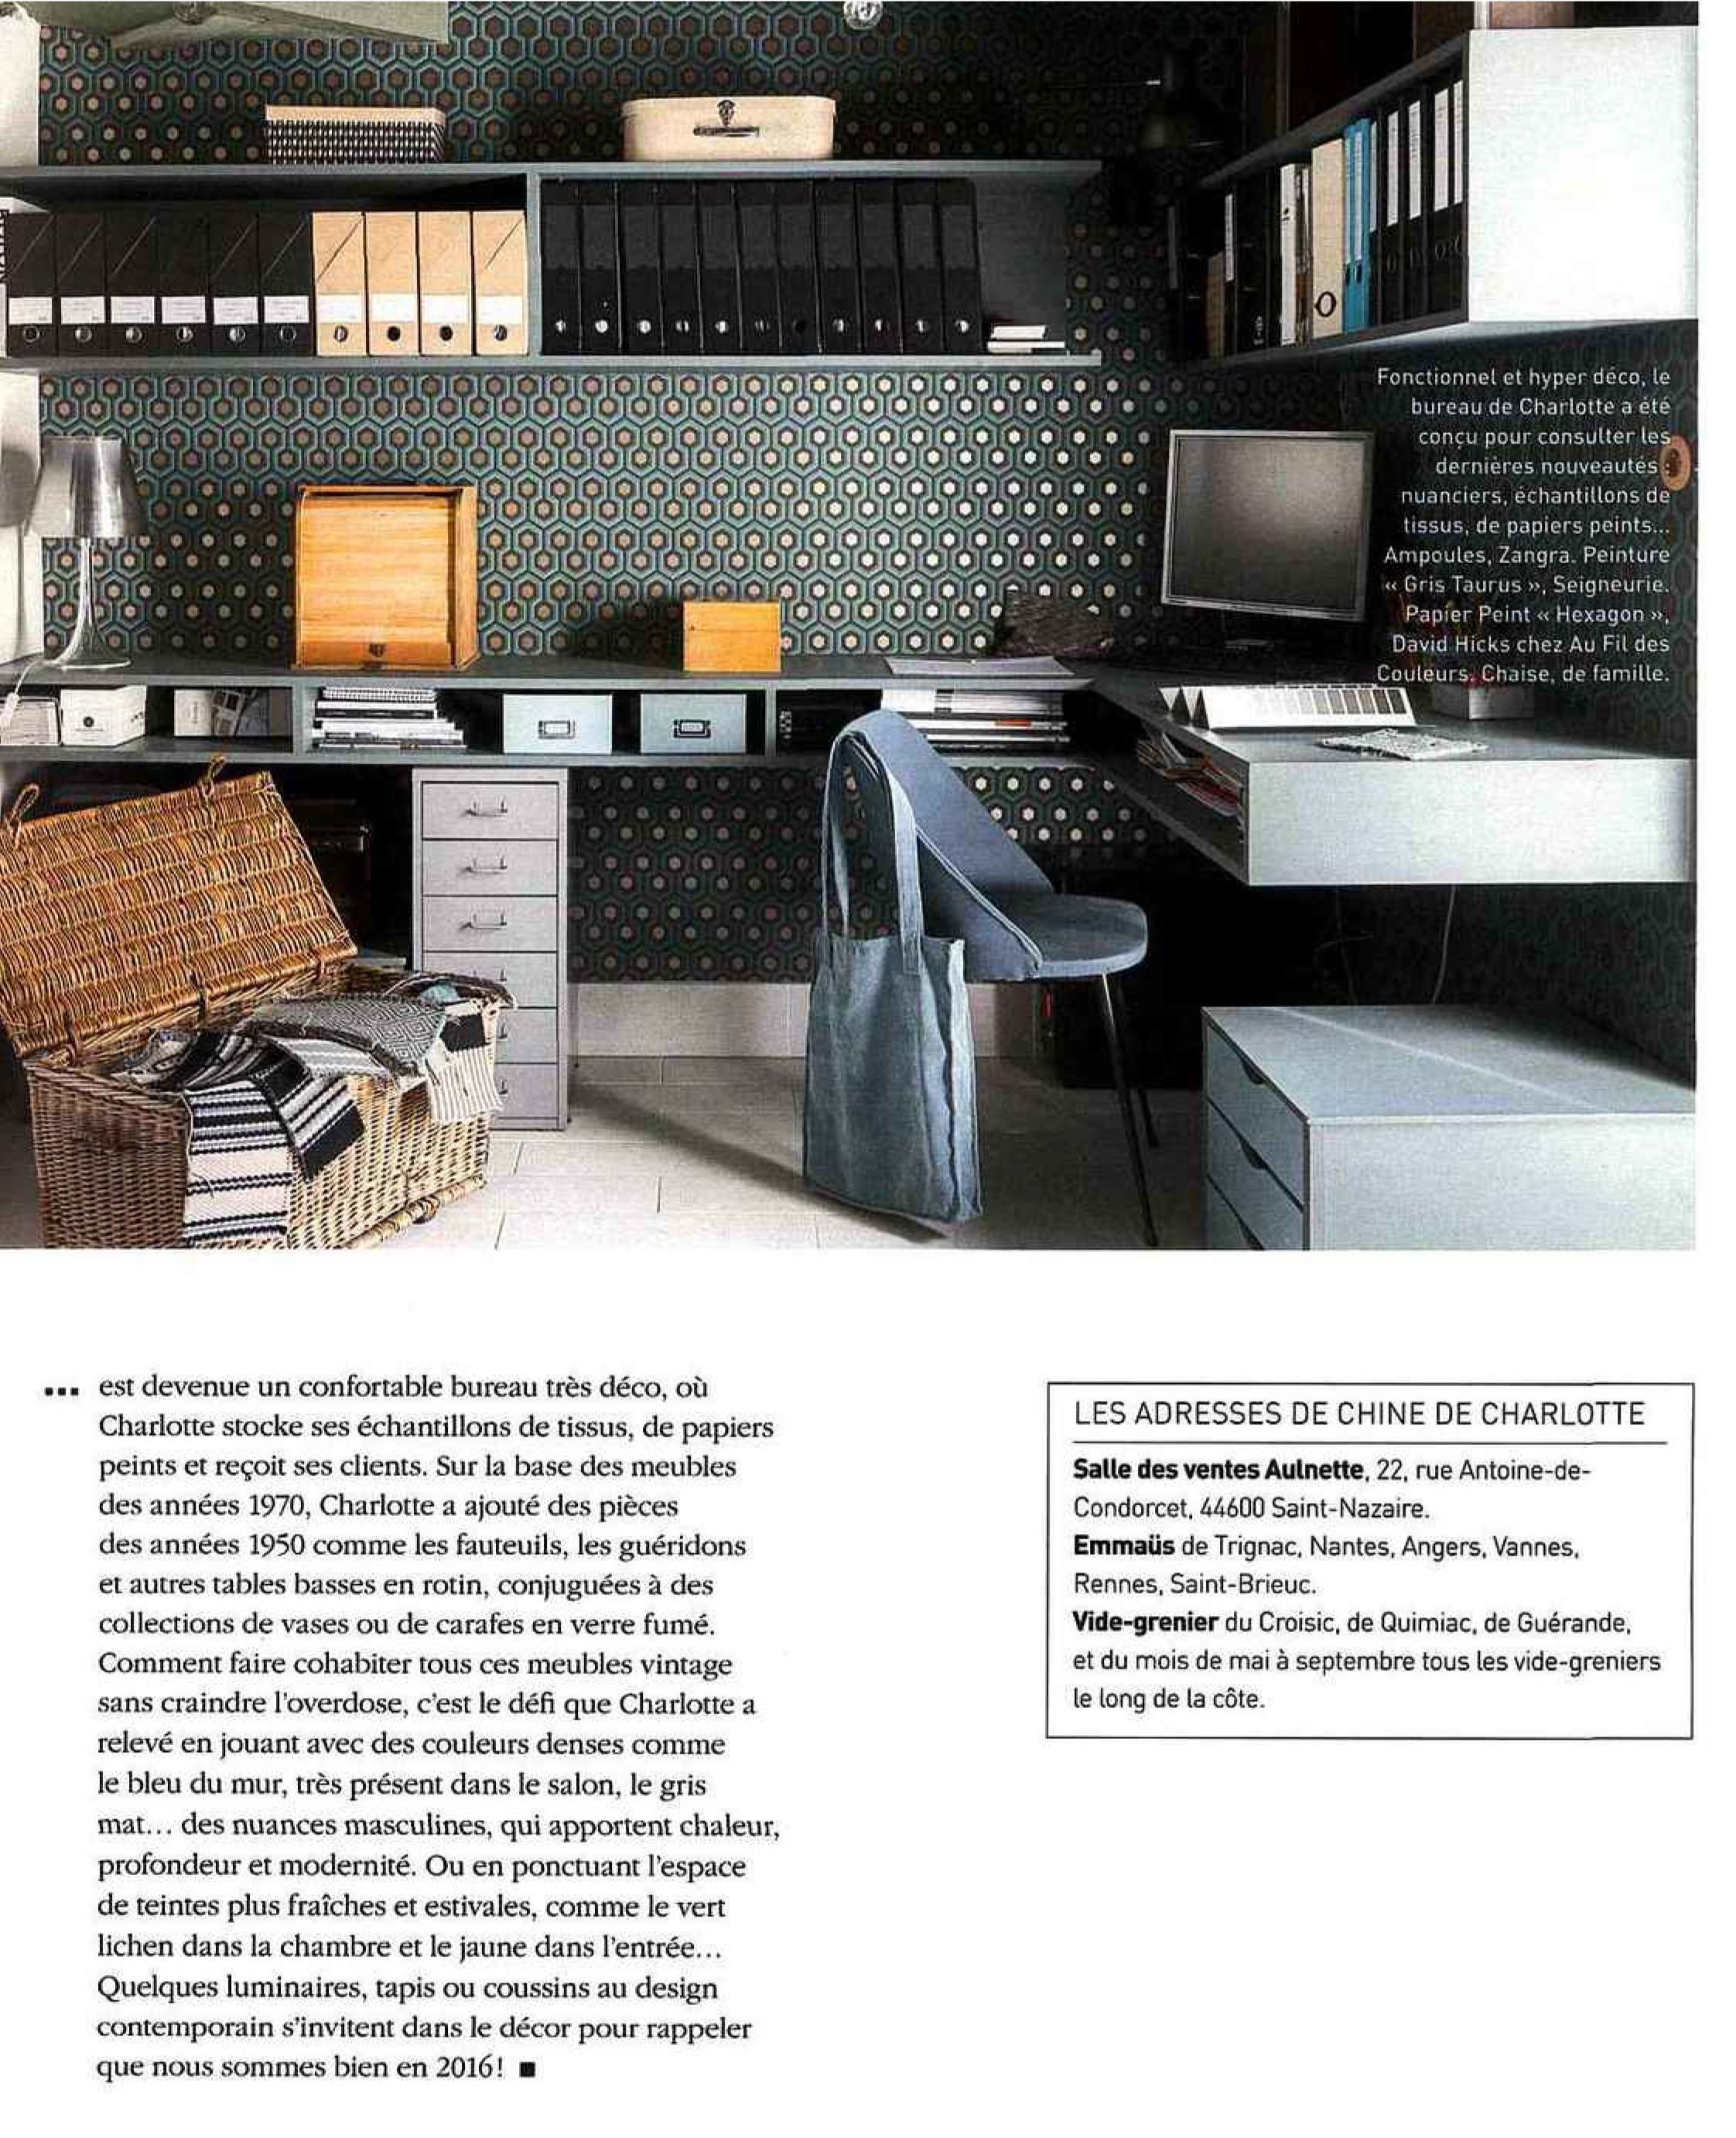 art et d coration mai juin 2016 blog au fil des couleurs. Black Bedroom Furniture Sets. Home Design Ideas